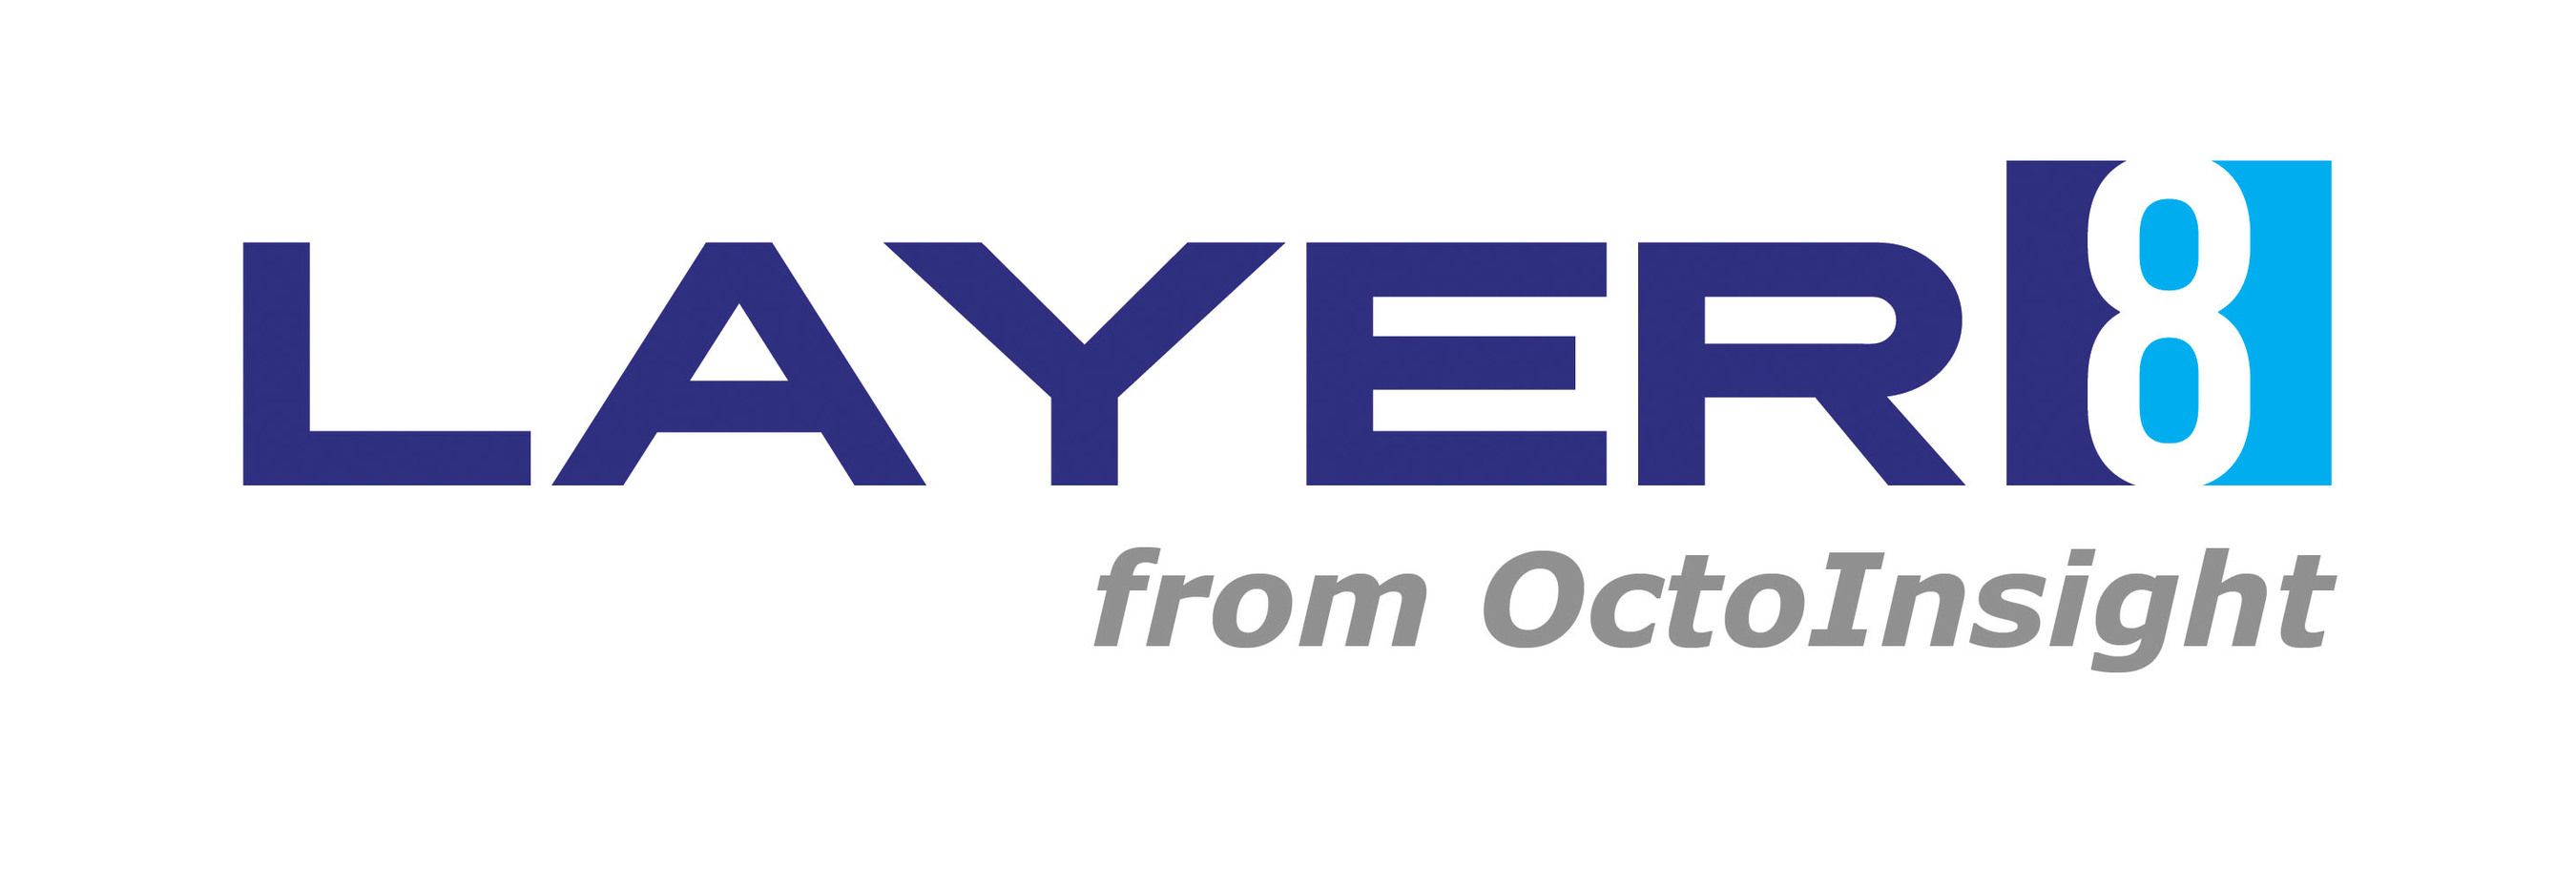 """""""Layer8 from Logfiller provides a complete record of the user's experience from logon to logoff, capturing every relevant event in between."""" - Logfiller Inc. CTO, Jeremy Barker"""